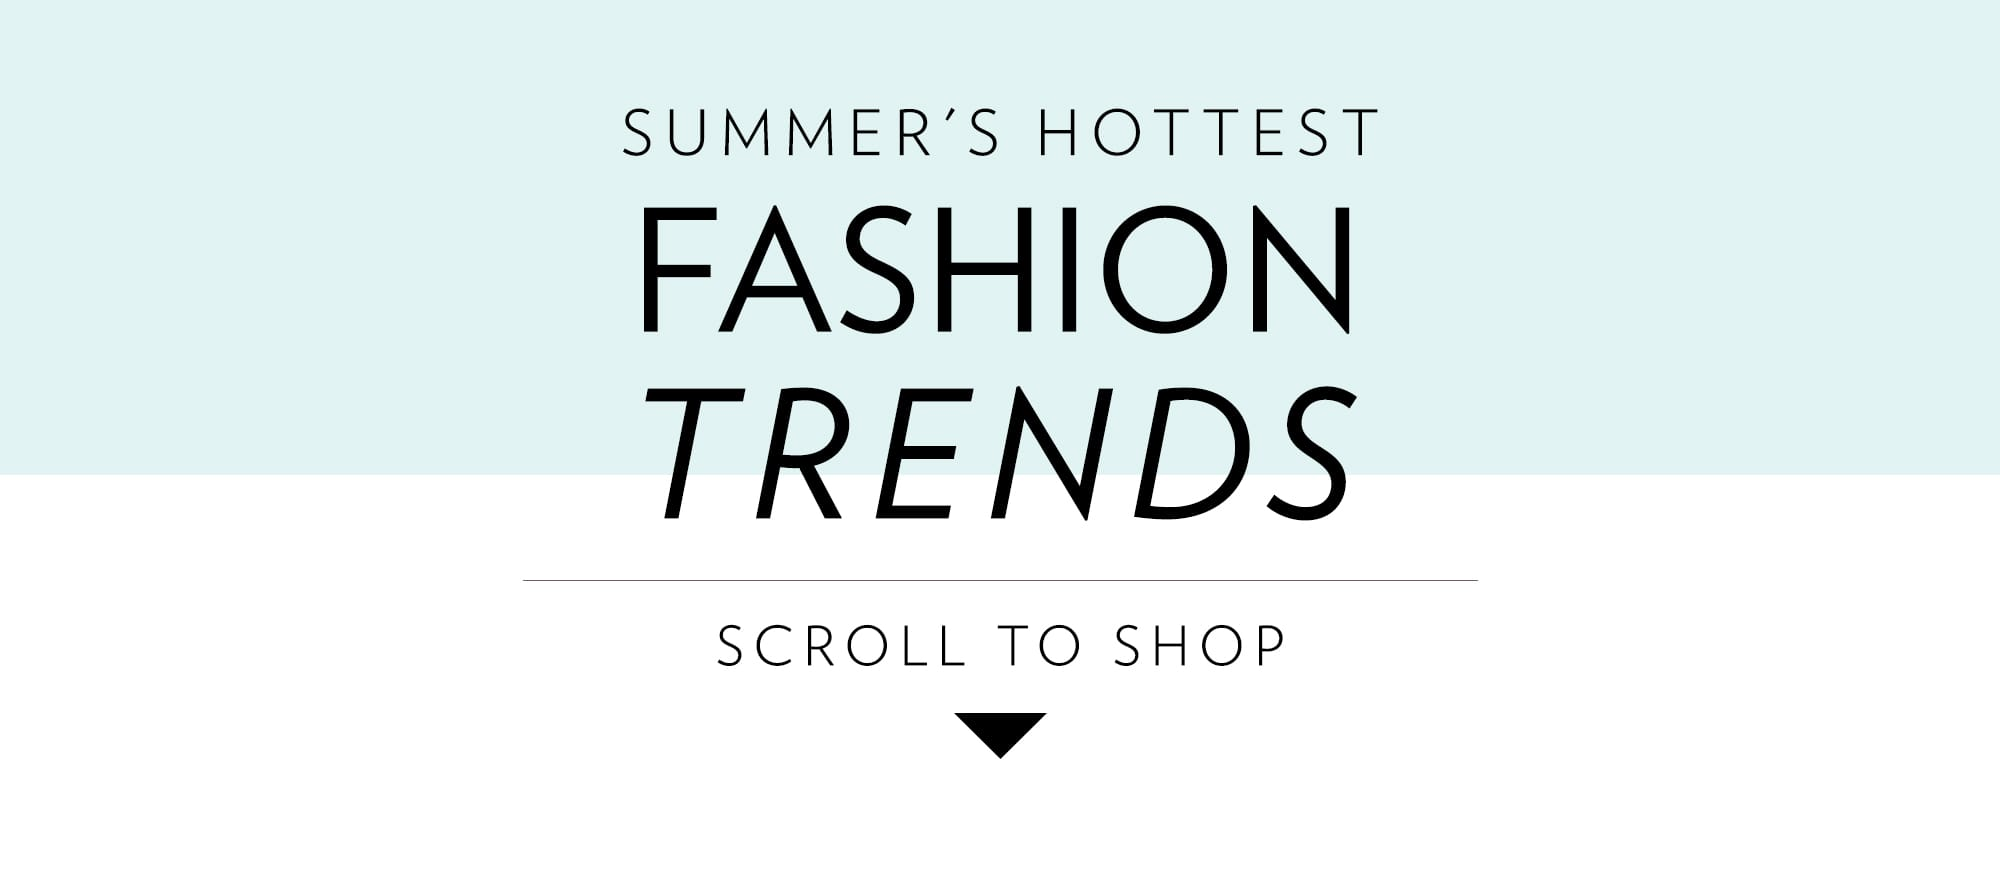 Summer's Hottest Fashion Trends